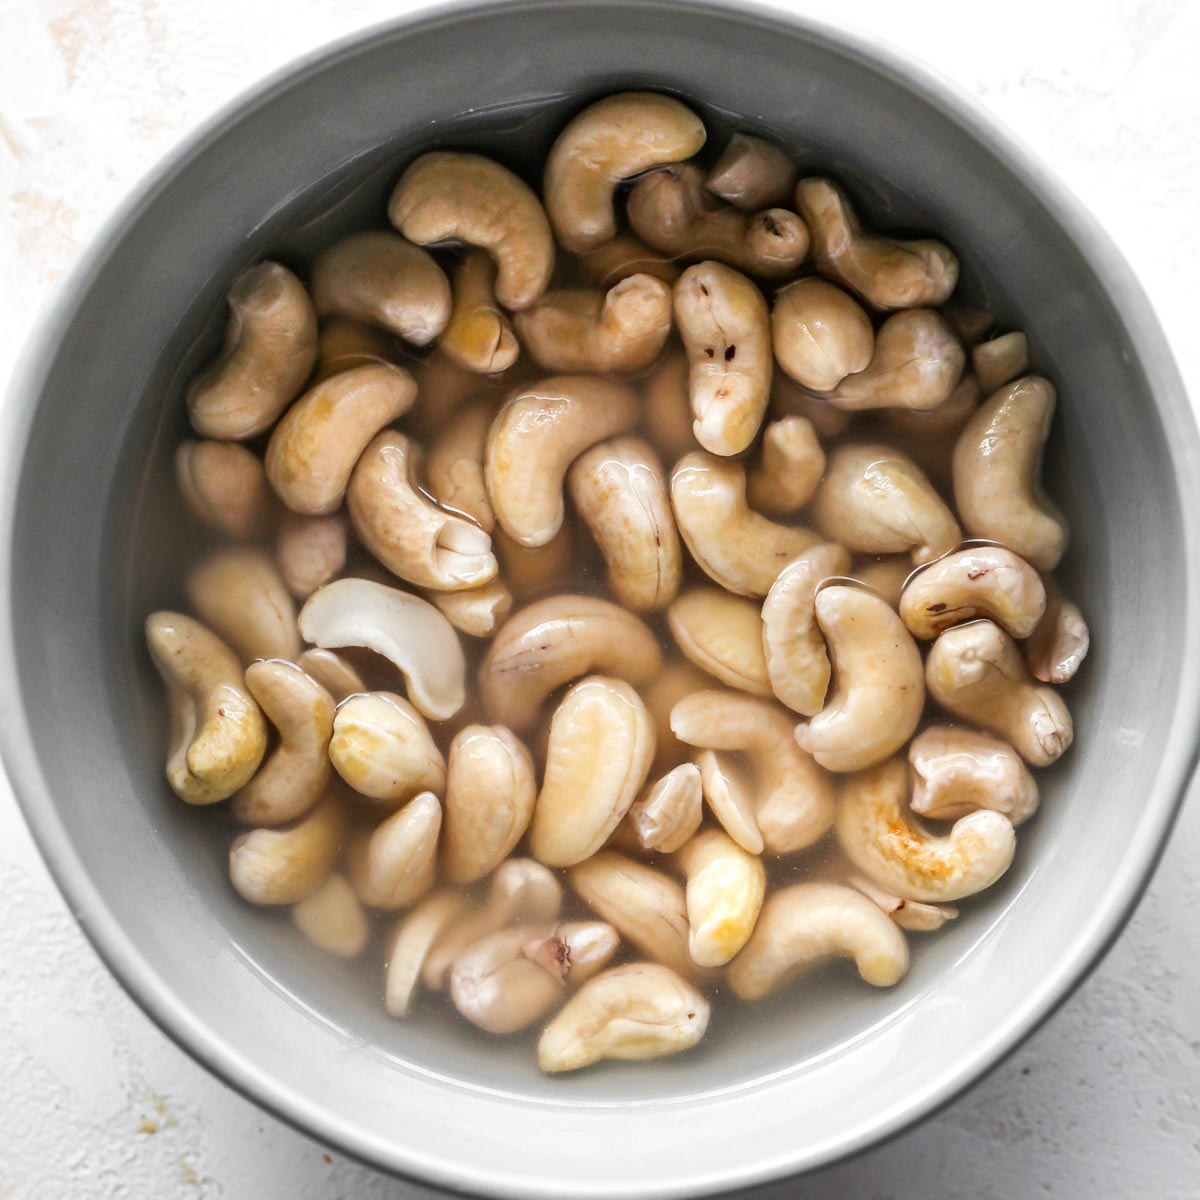 Cashews soaking in water in a grey bowl